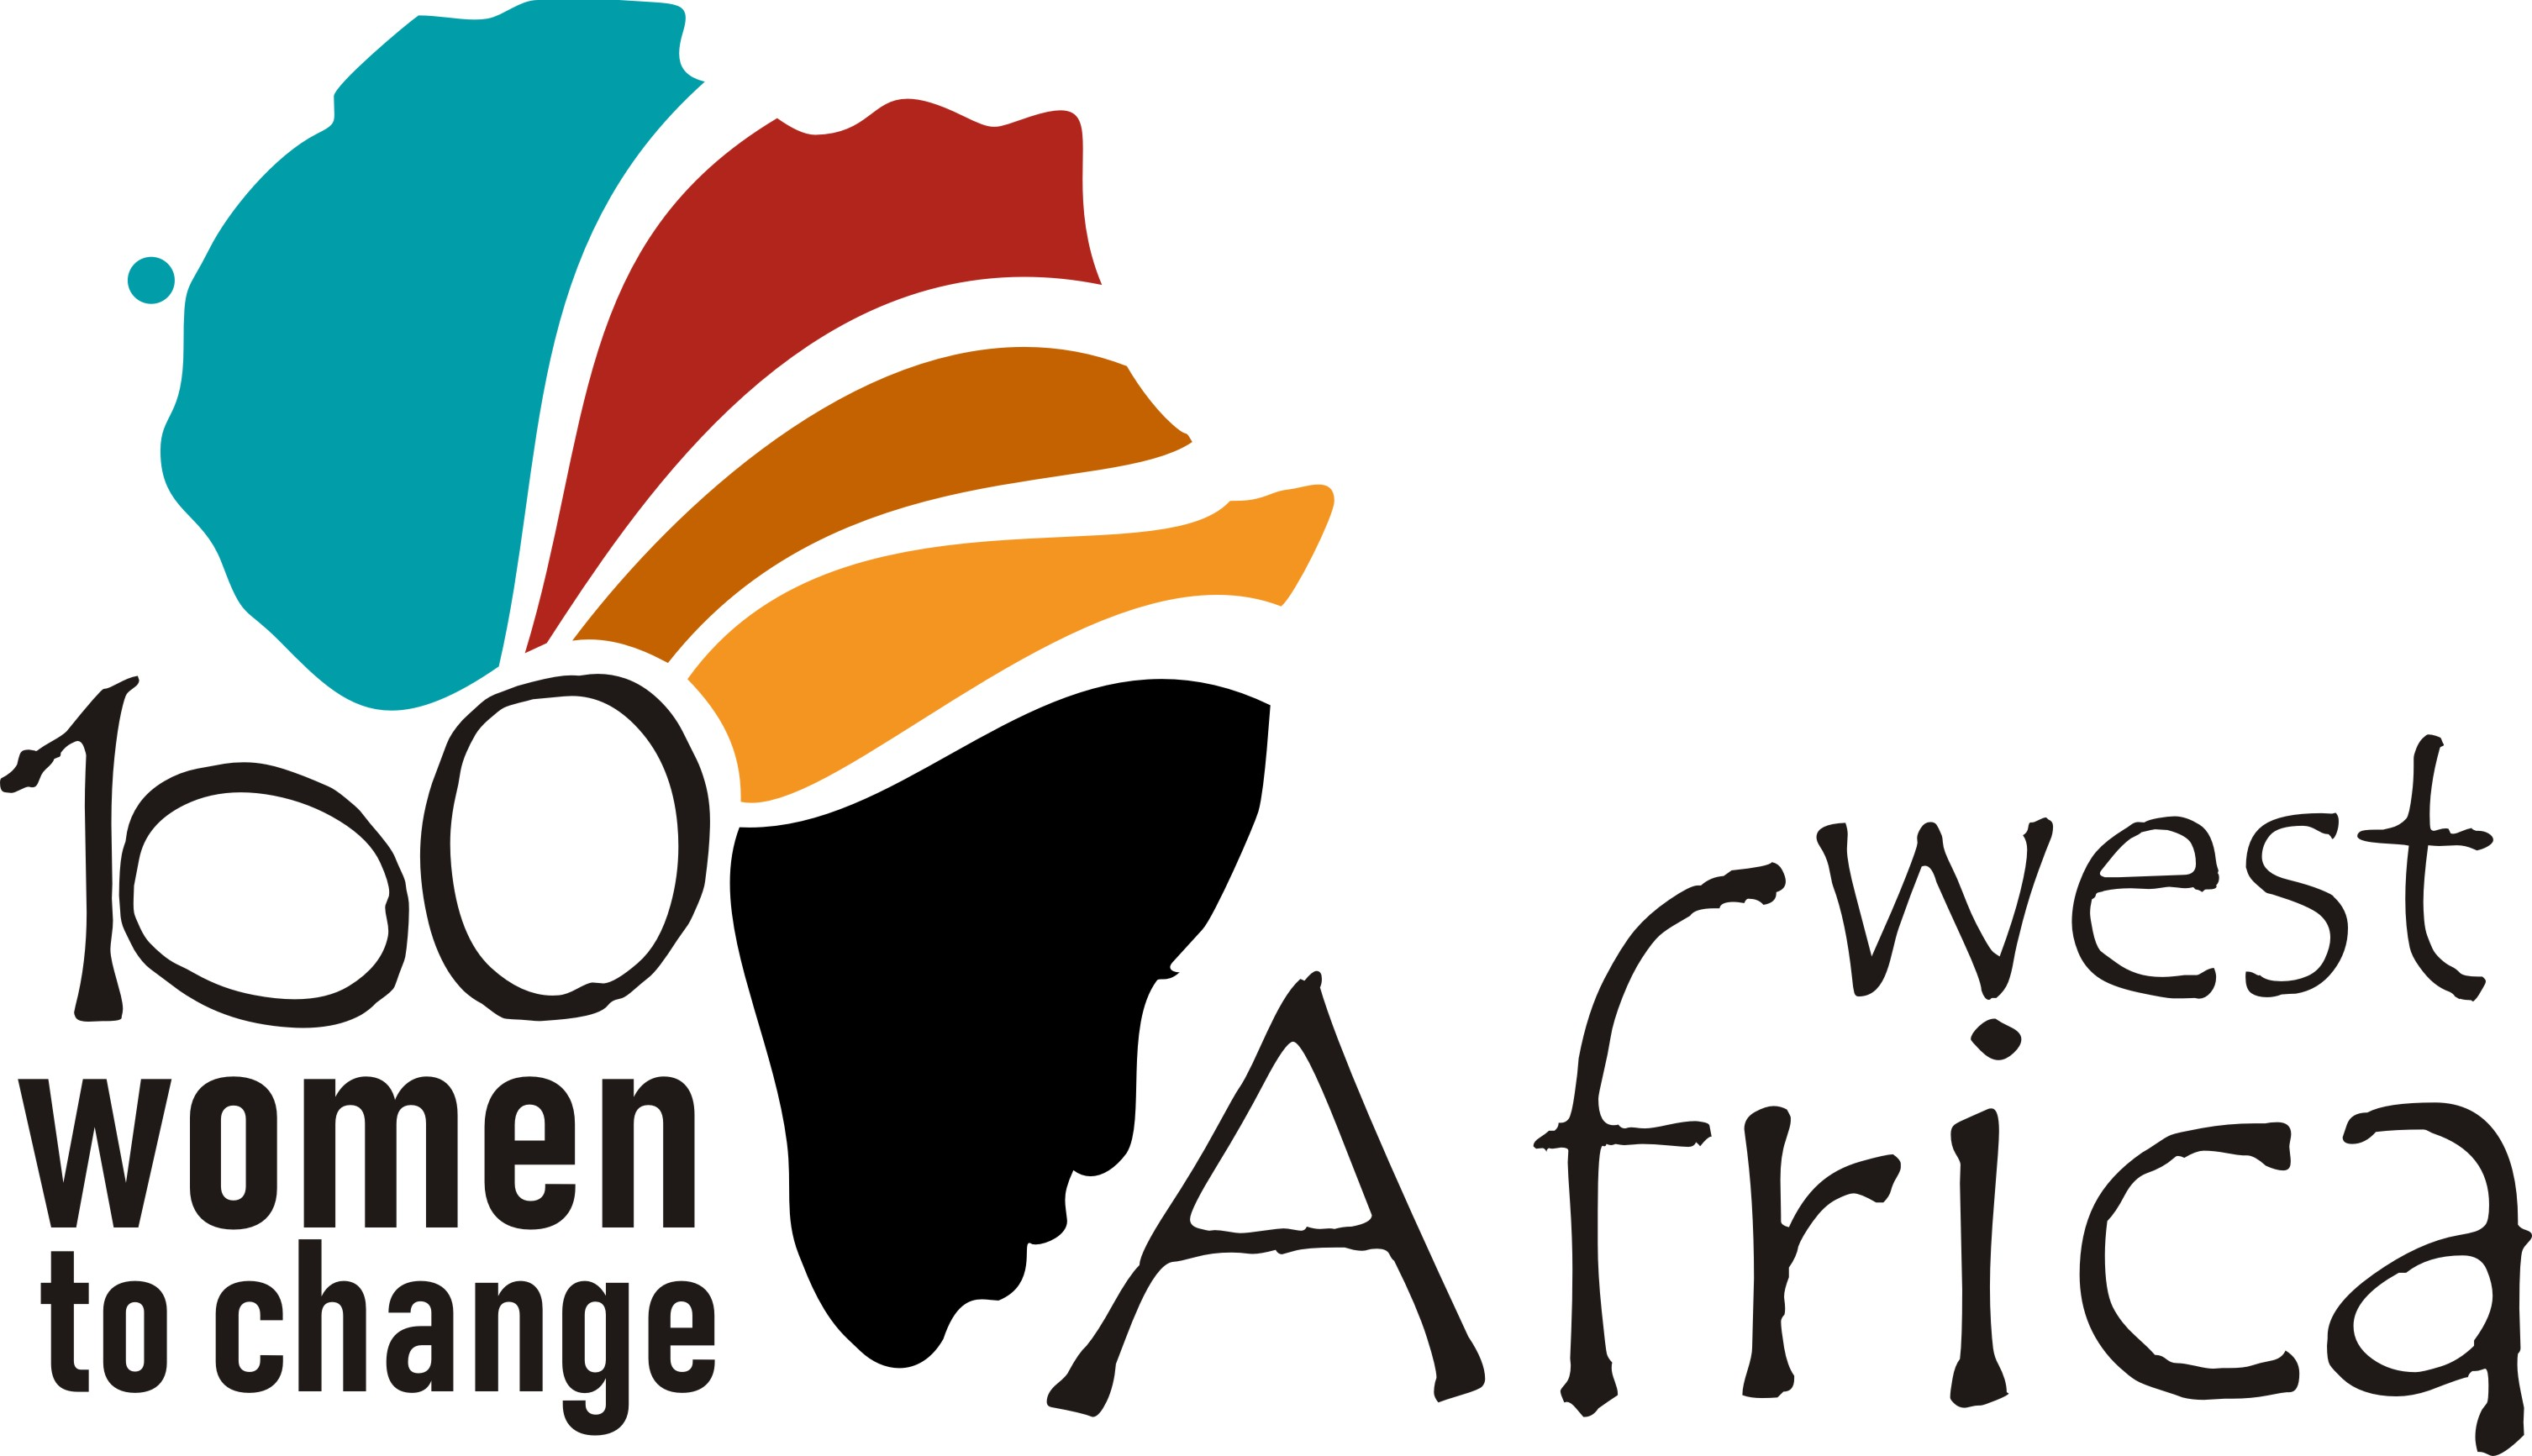 100 Women to Change West Africa